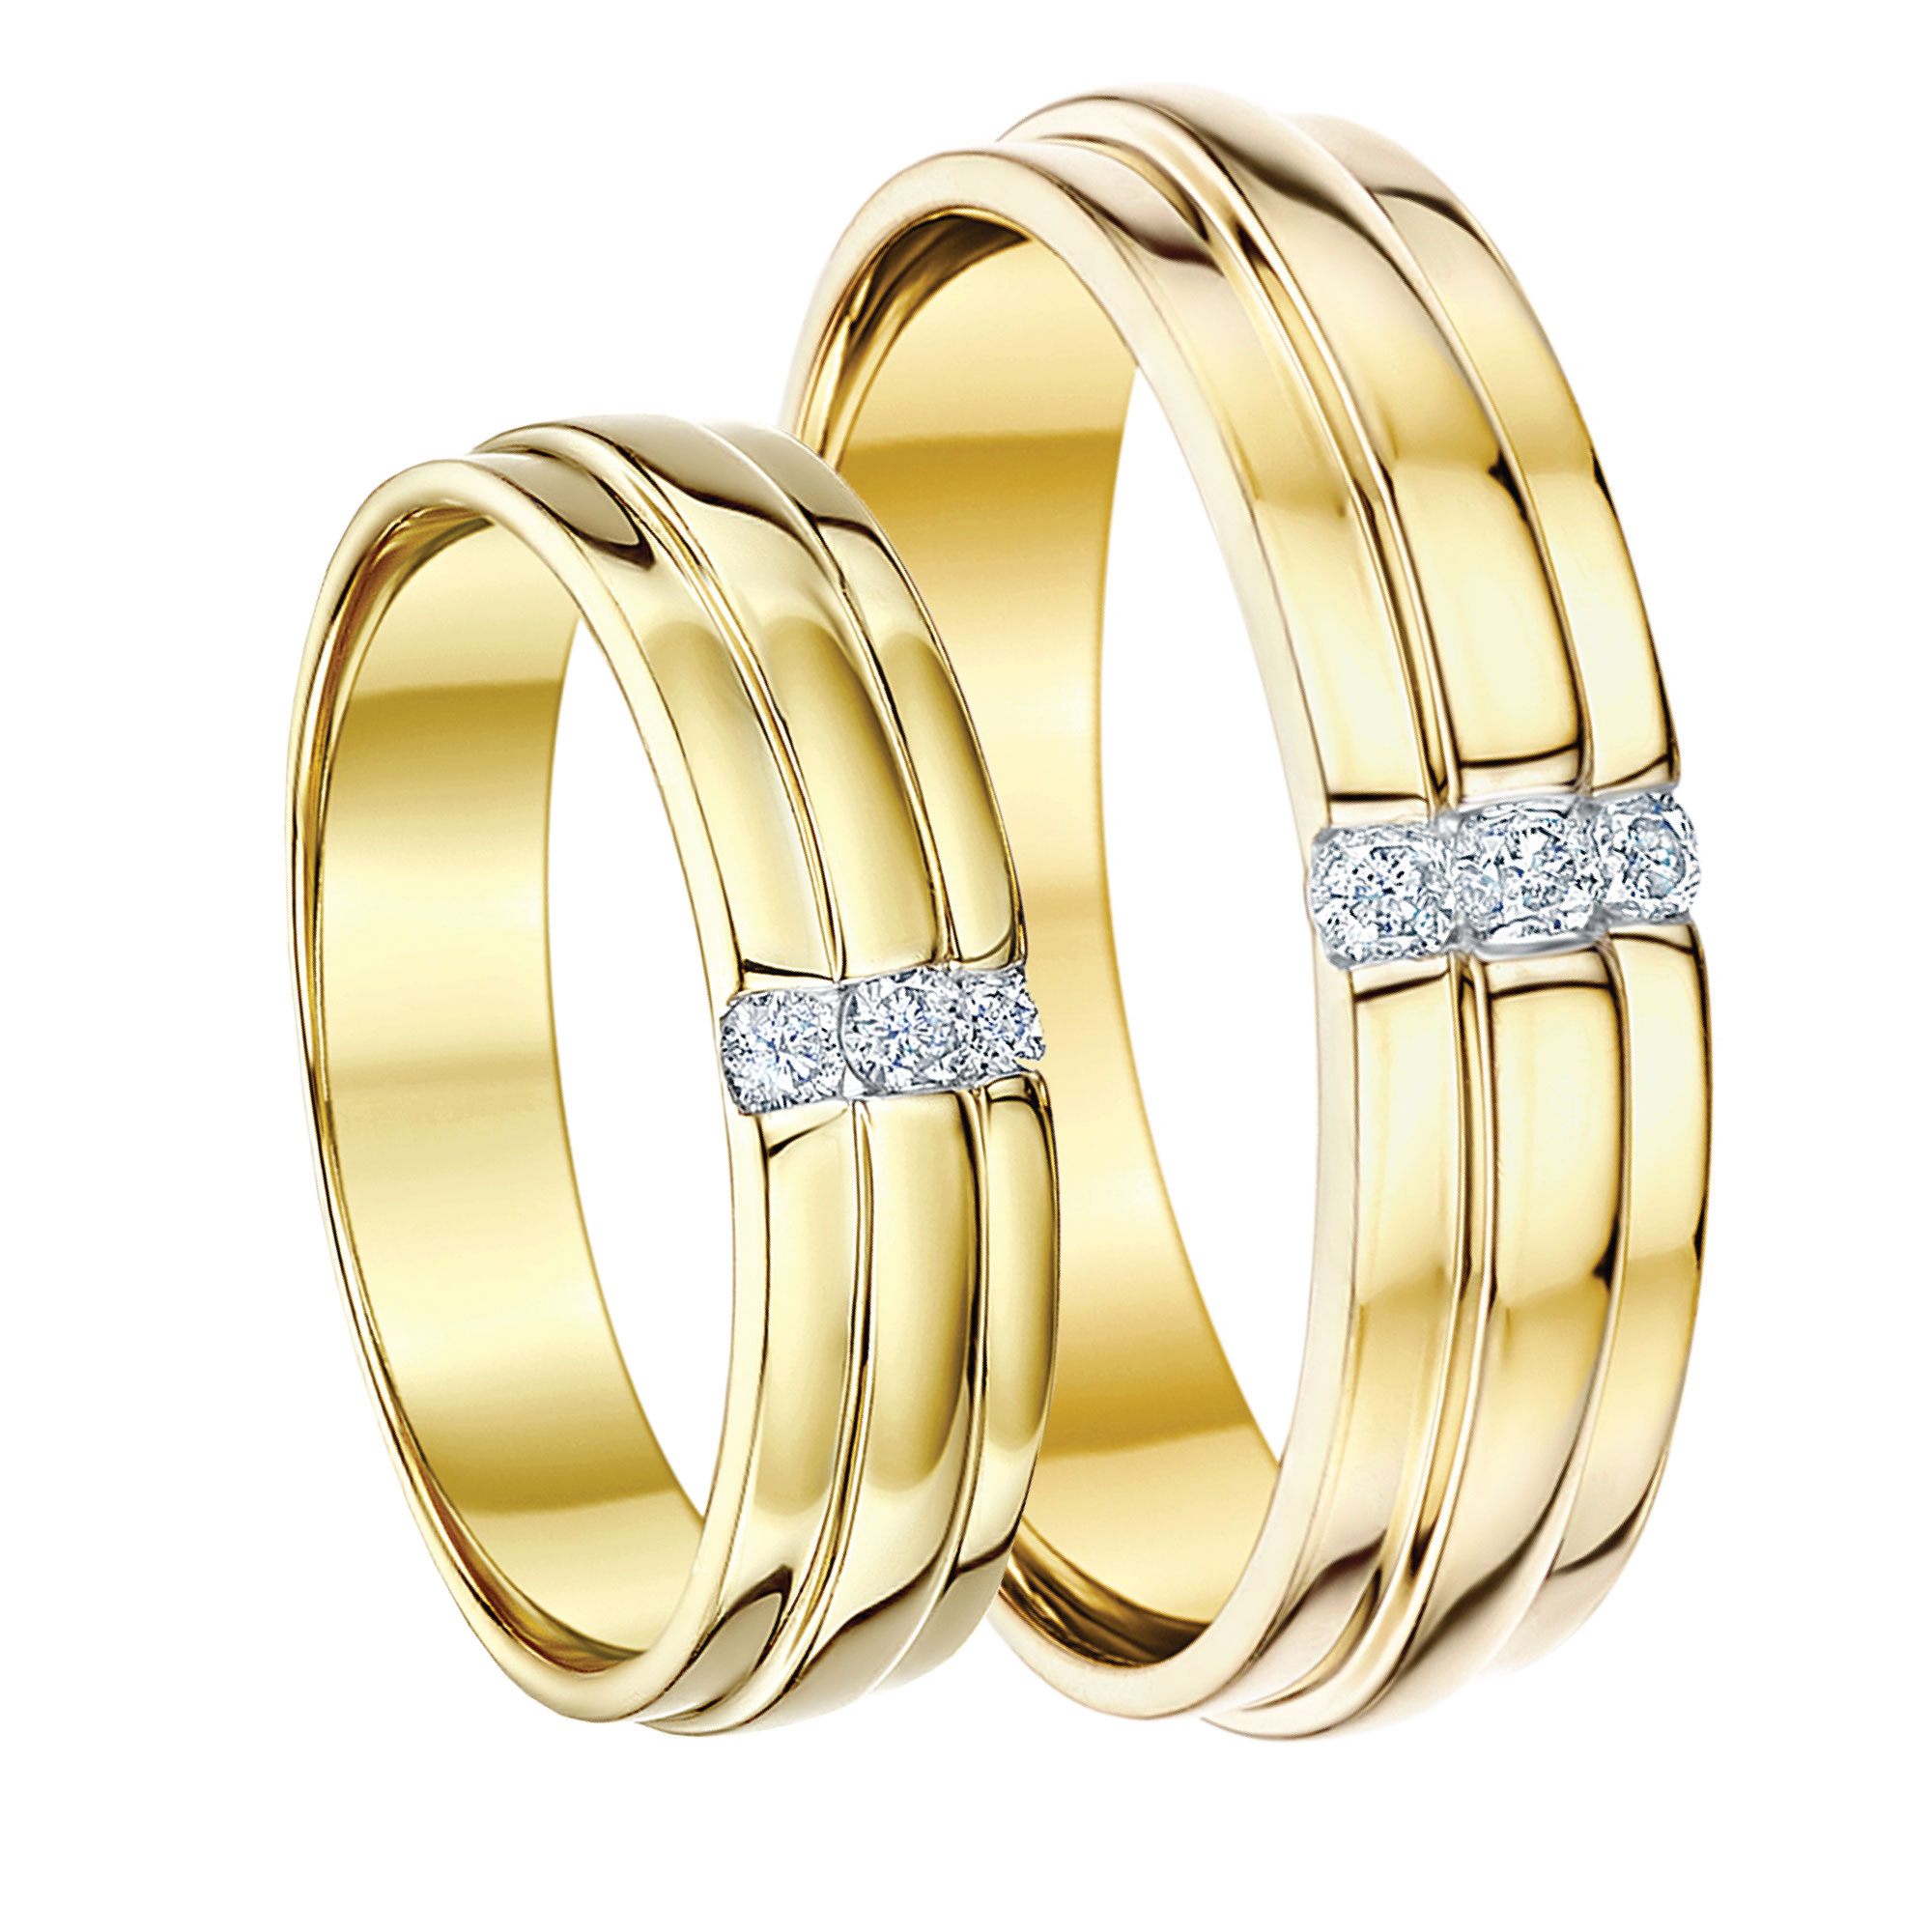 matching yellow gold wedding ring sets, his & hers sets for groom